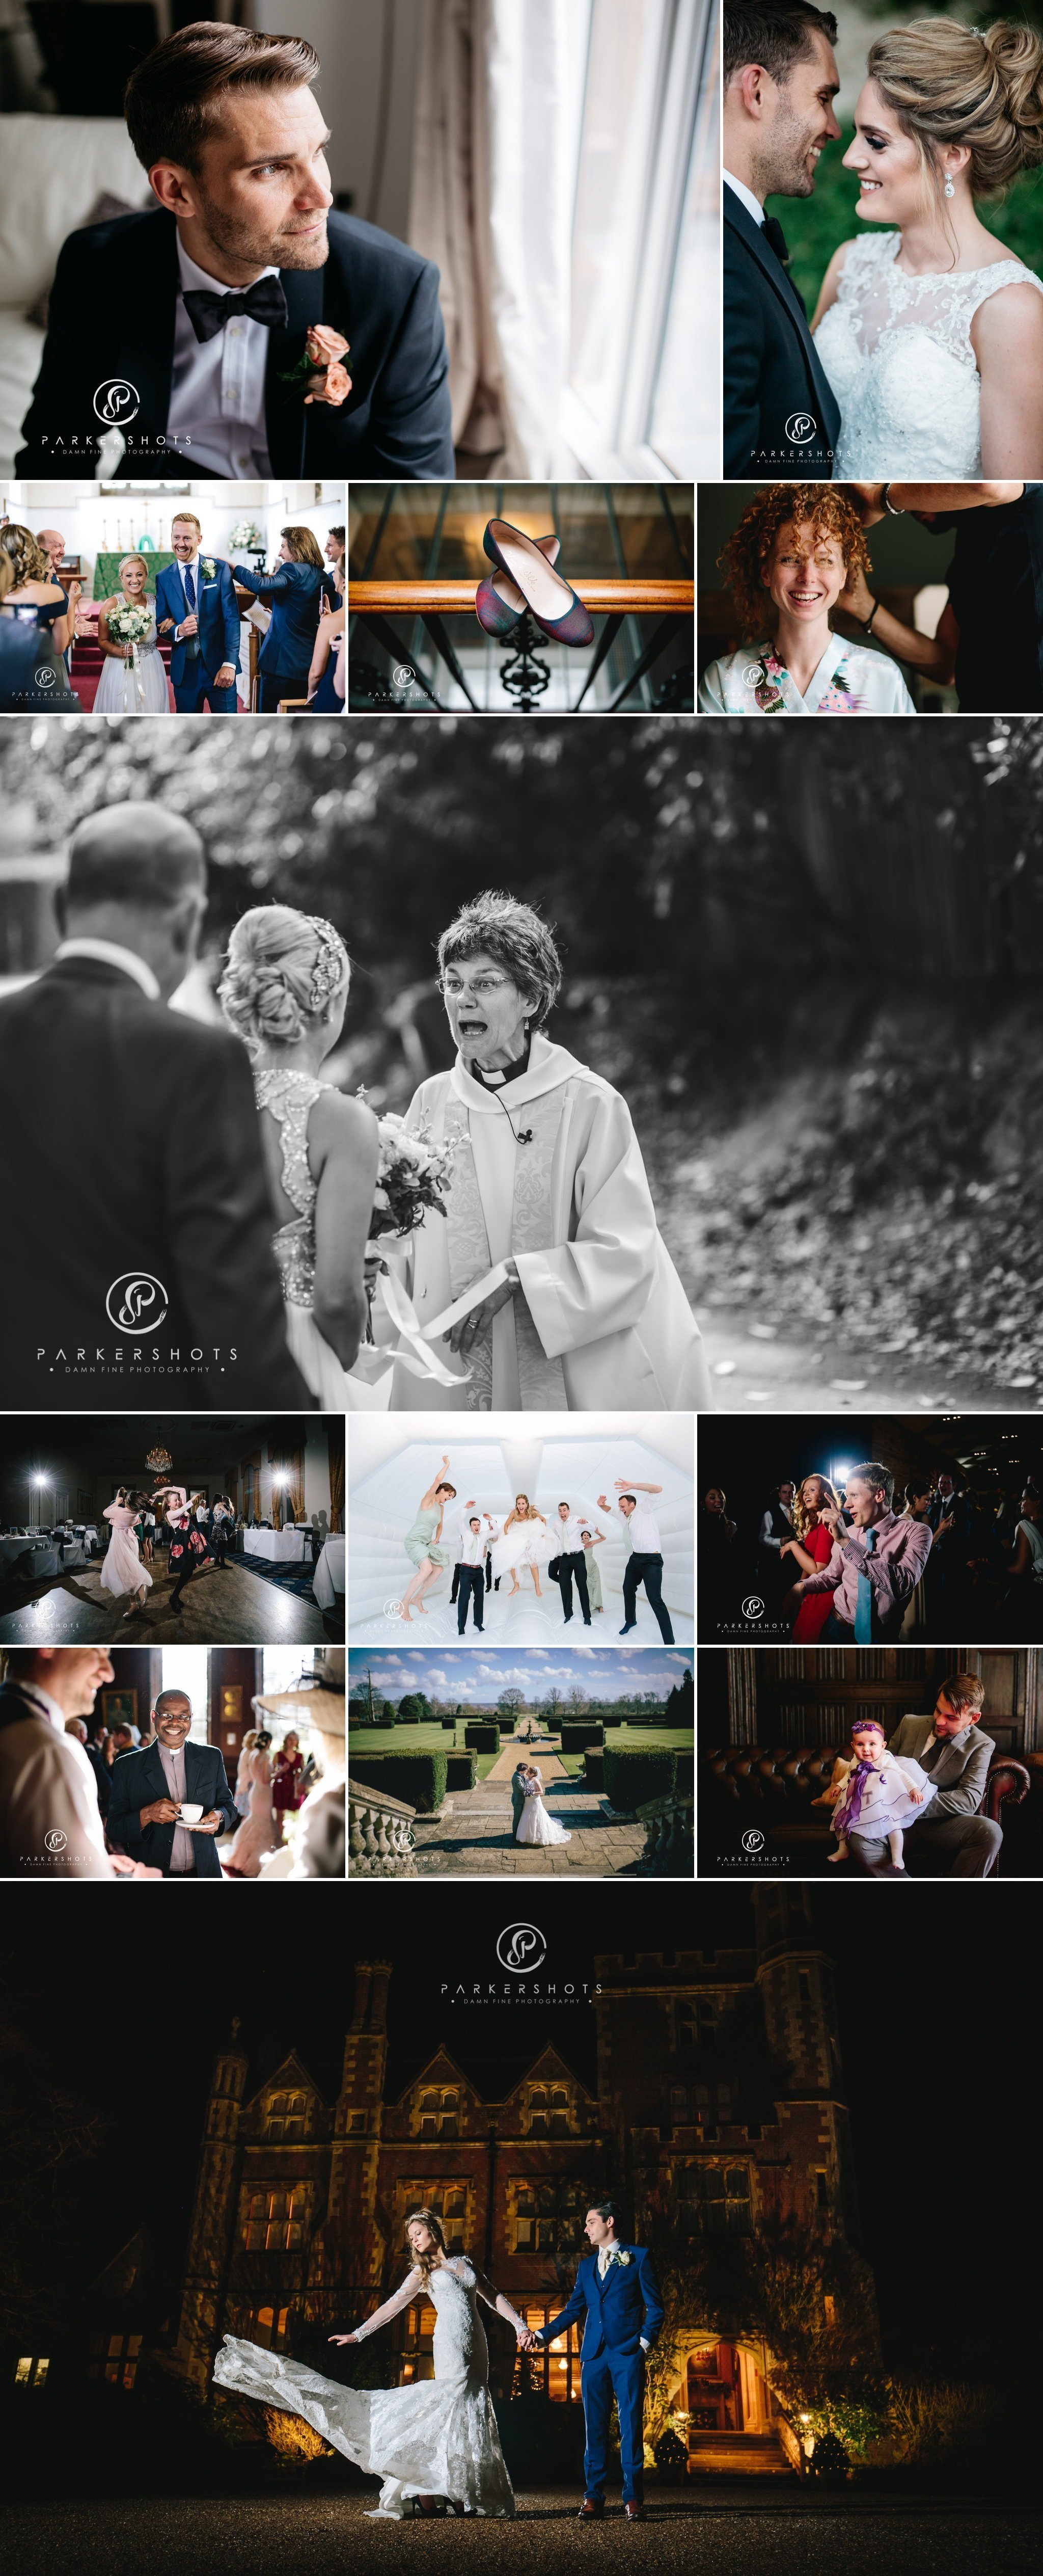 Best wedding photographer uk 4